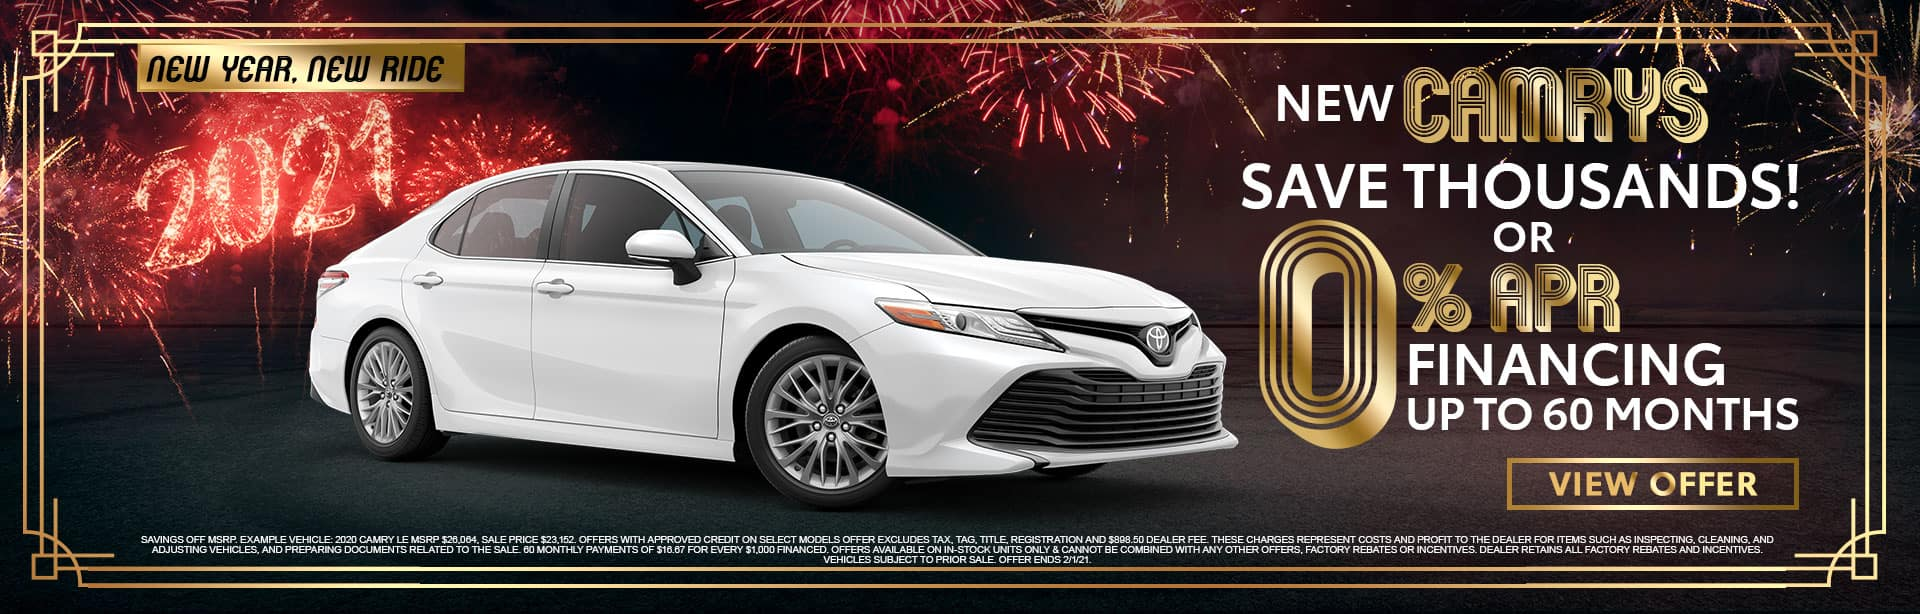 Amazing Savings on New Camrys at Bev Smith Toyota